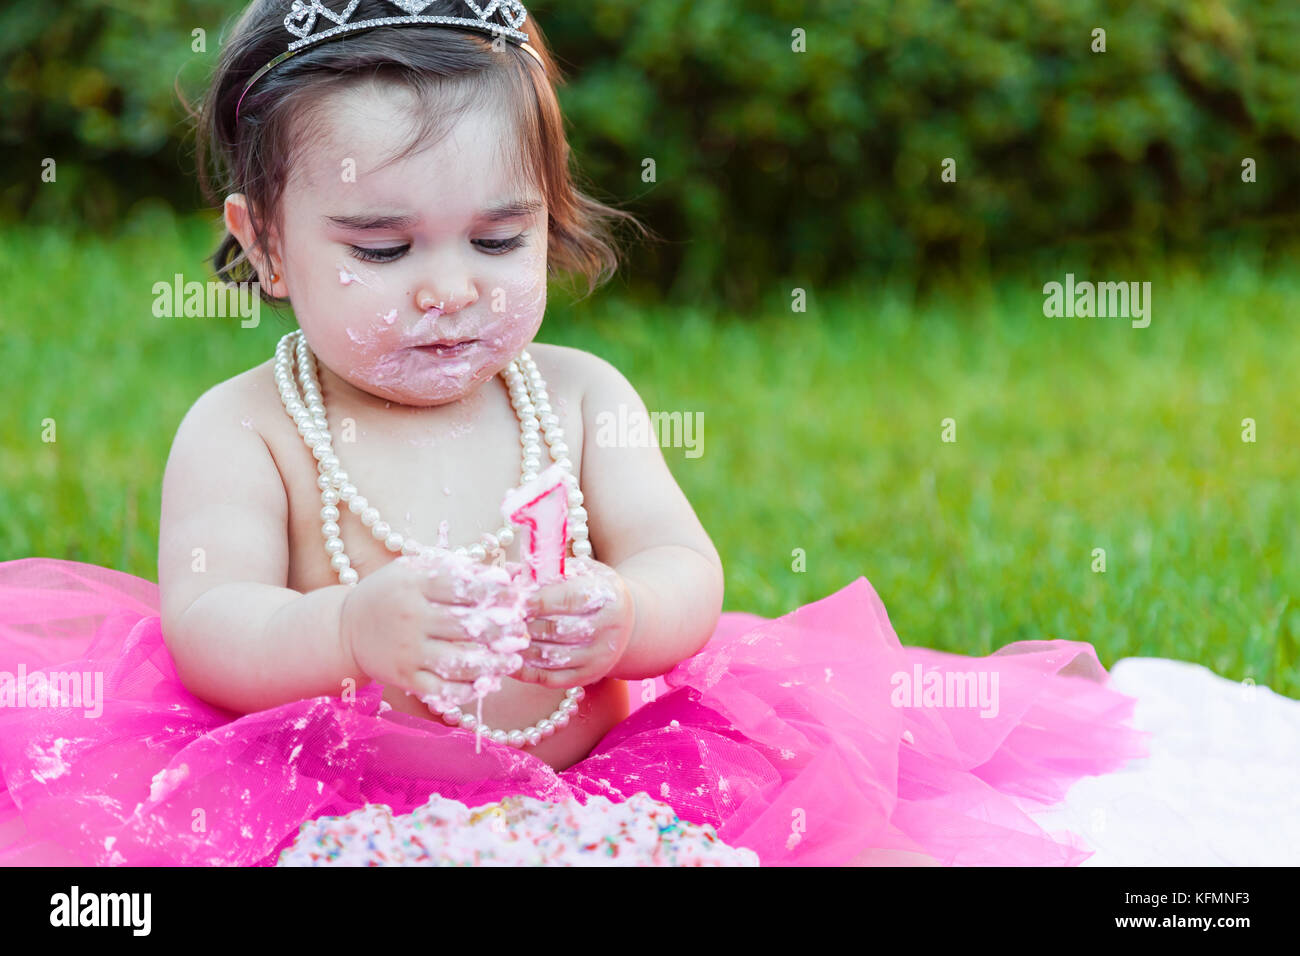 Baby toddler girl first birthday anniversary party, playing with candle, dirty face and making a mess of pink cake - Stock Image